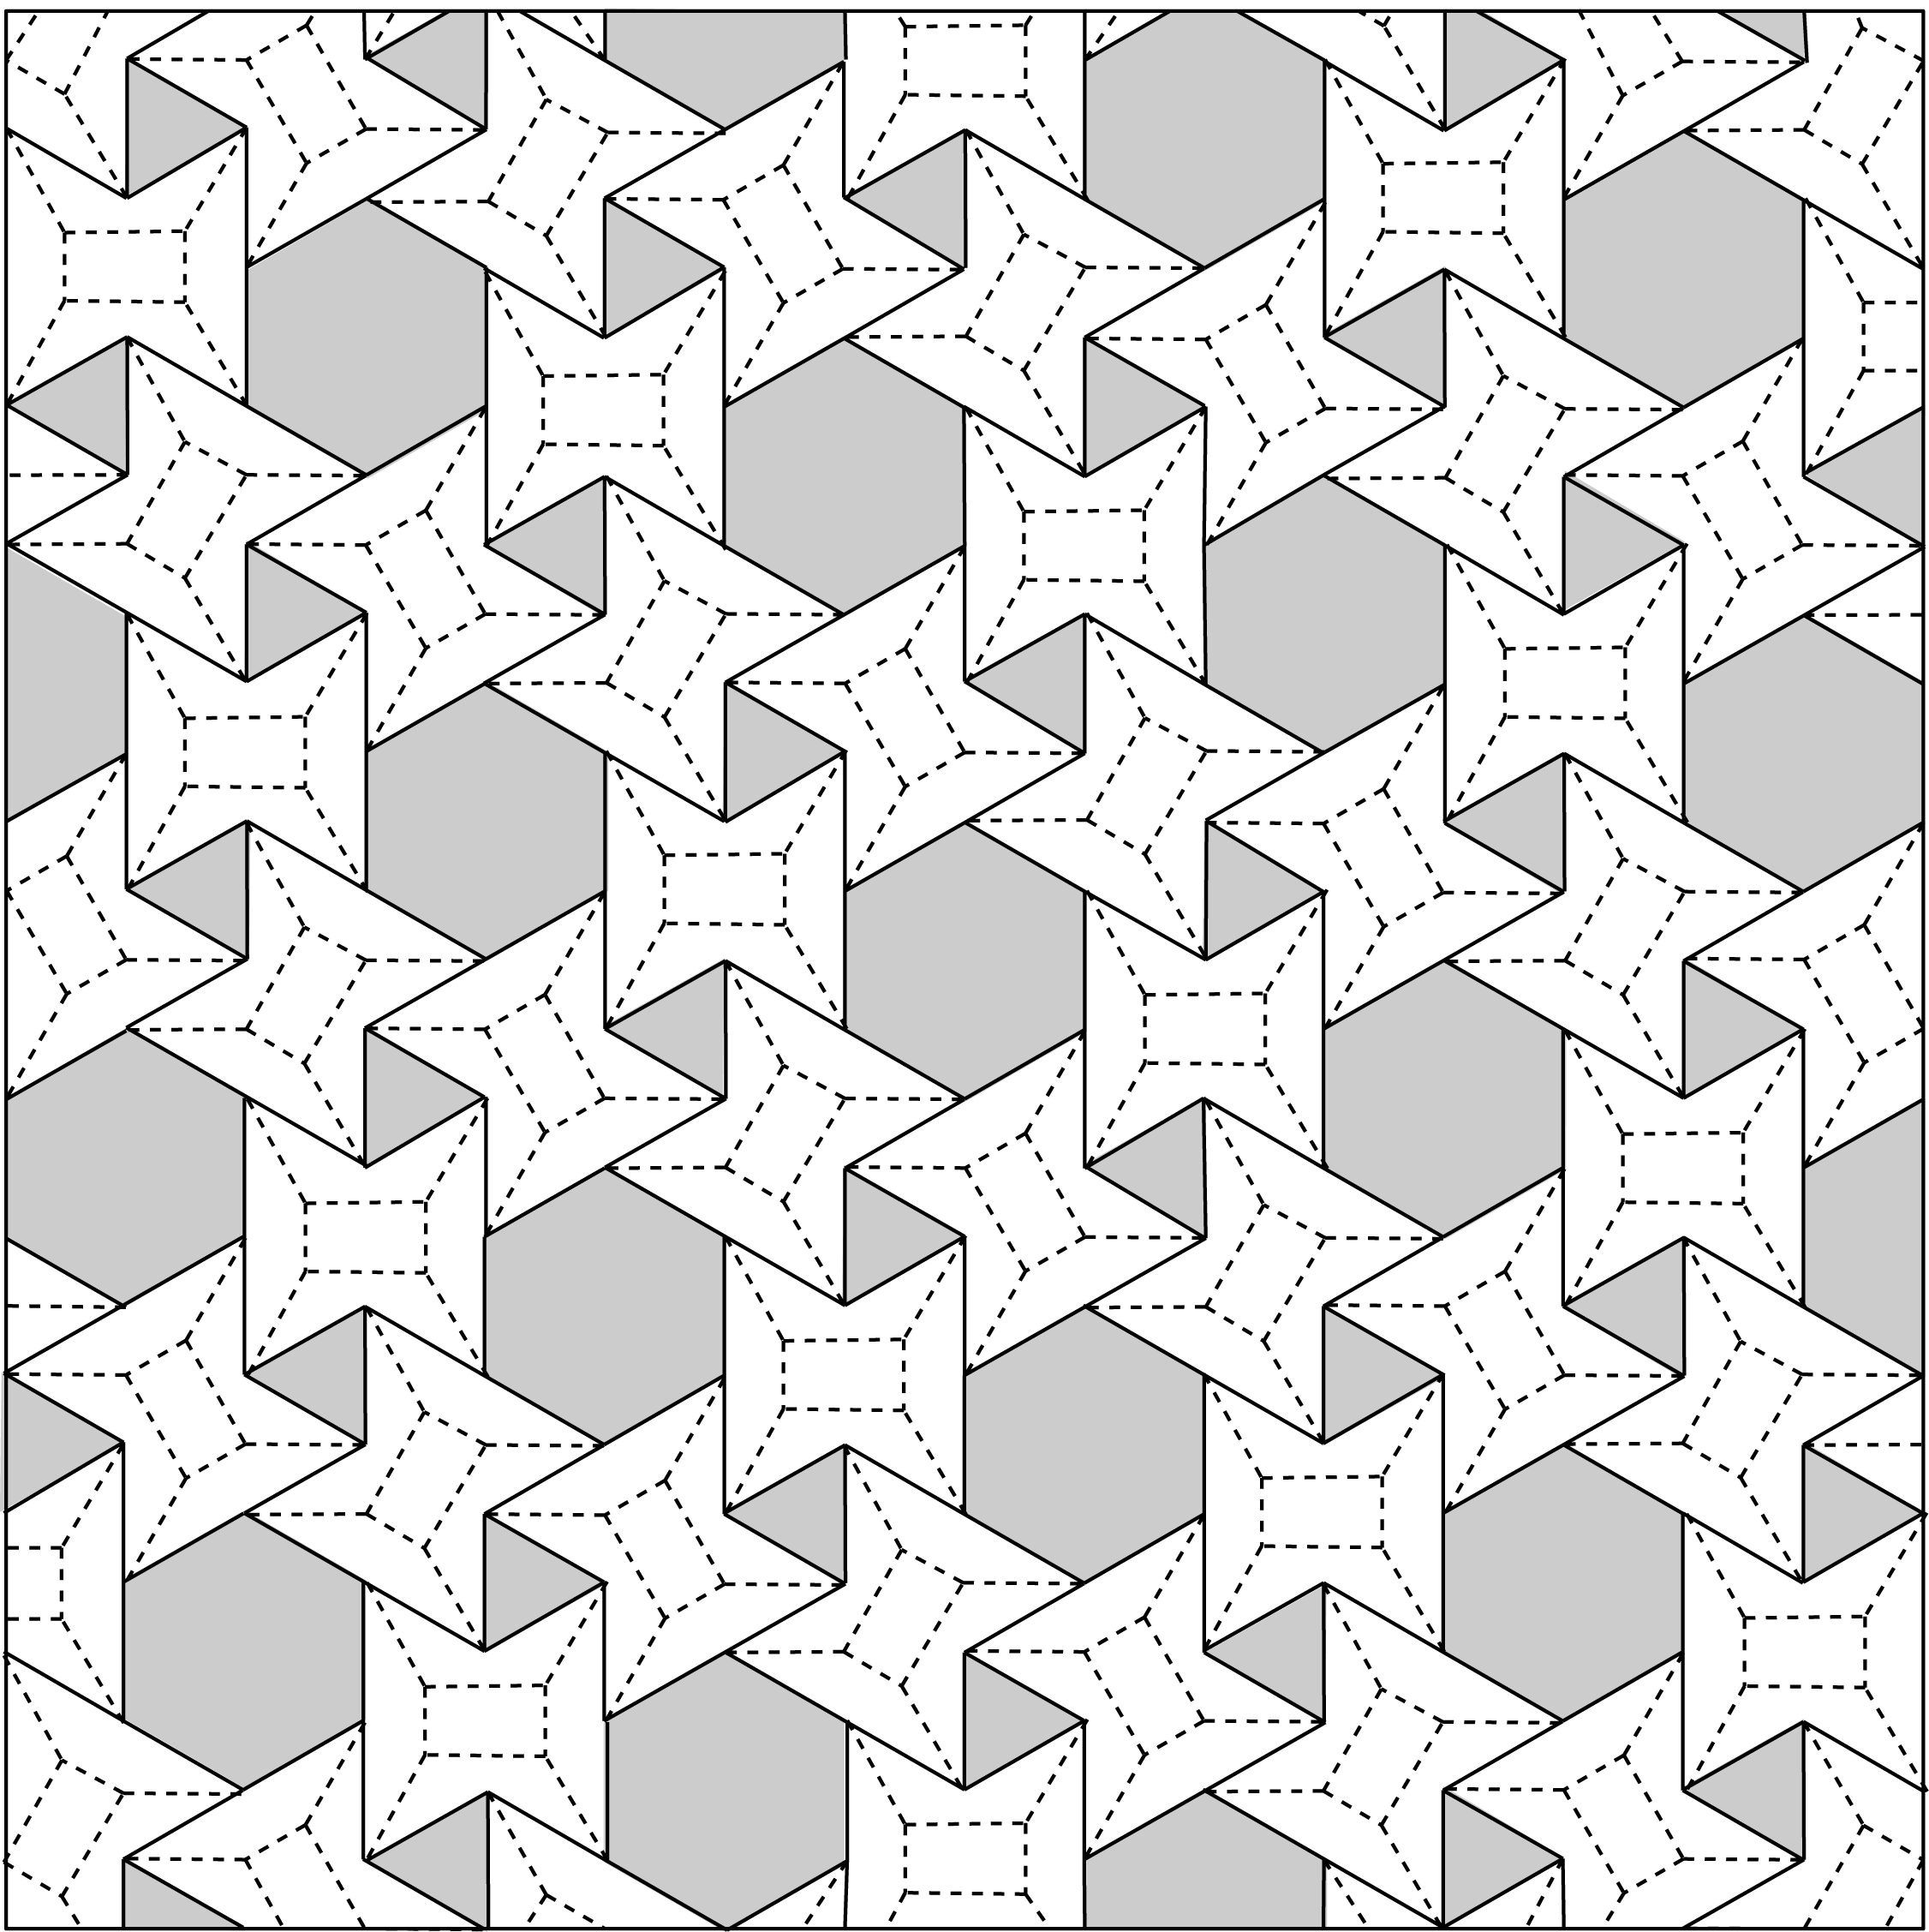 tessellating shapes templates - designcoding waterbomb tessellation and beyond